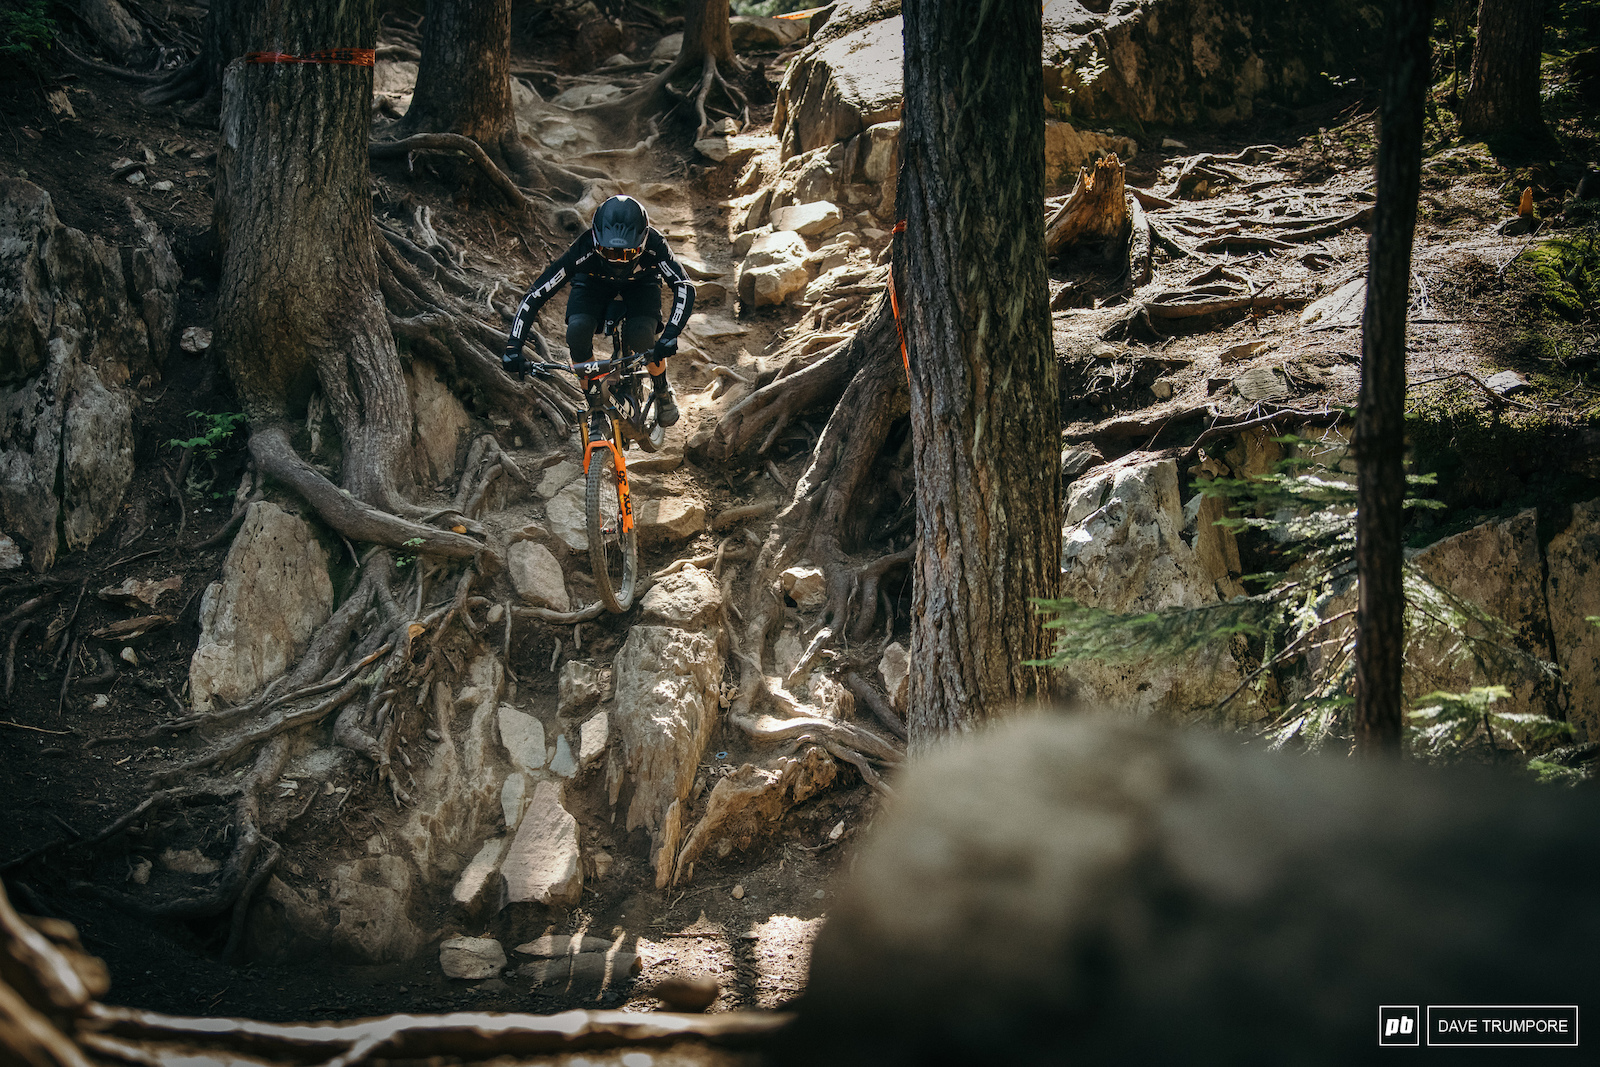 Usually it s DH bikes that we see smashing down through the classic rocks of In Deep during the annual Garbanzo DH race. This year however it is the Enduro World Series turn to show off what modern trail bikes are capable of.